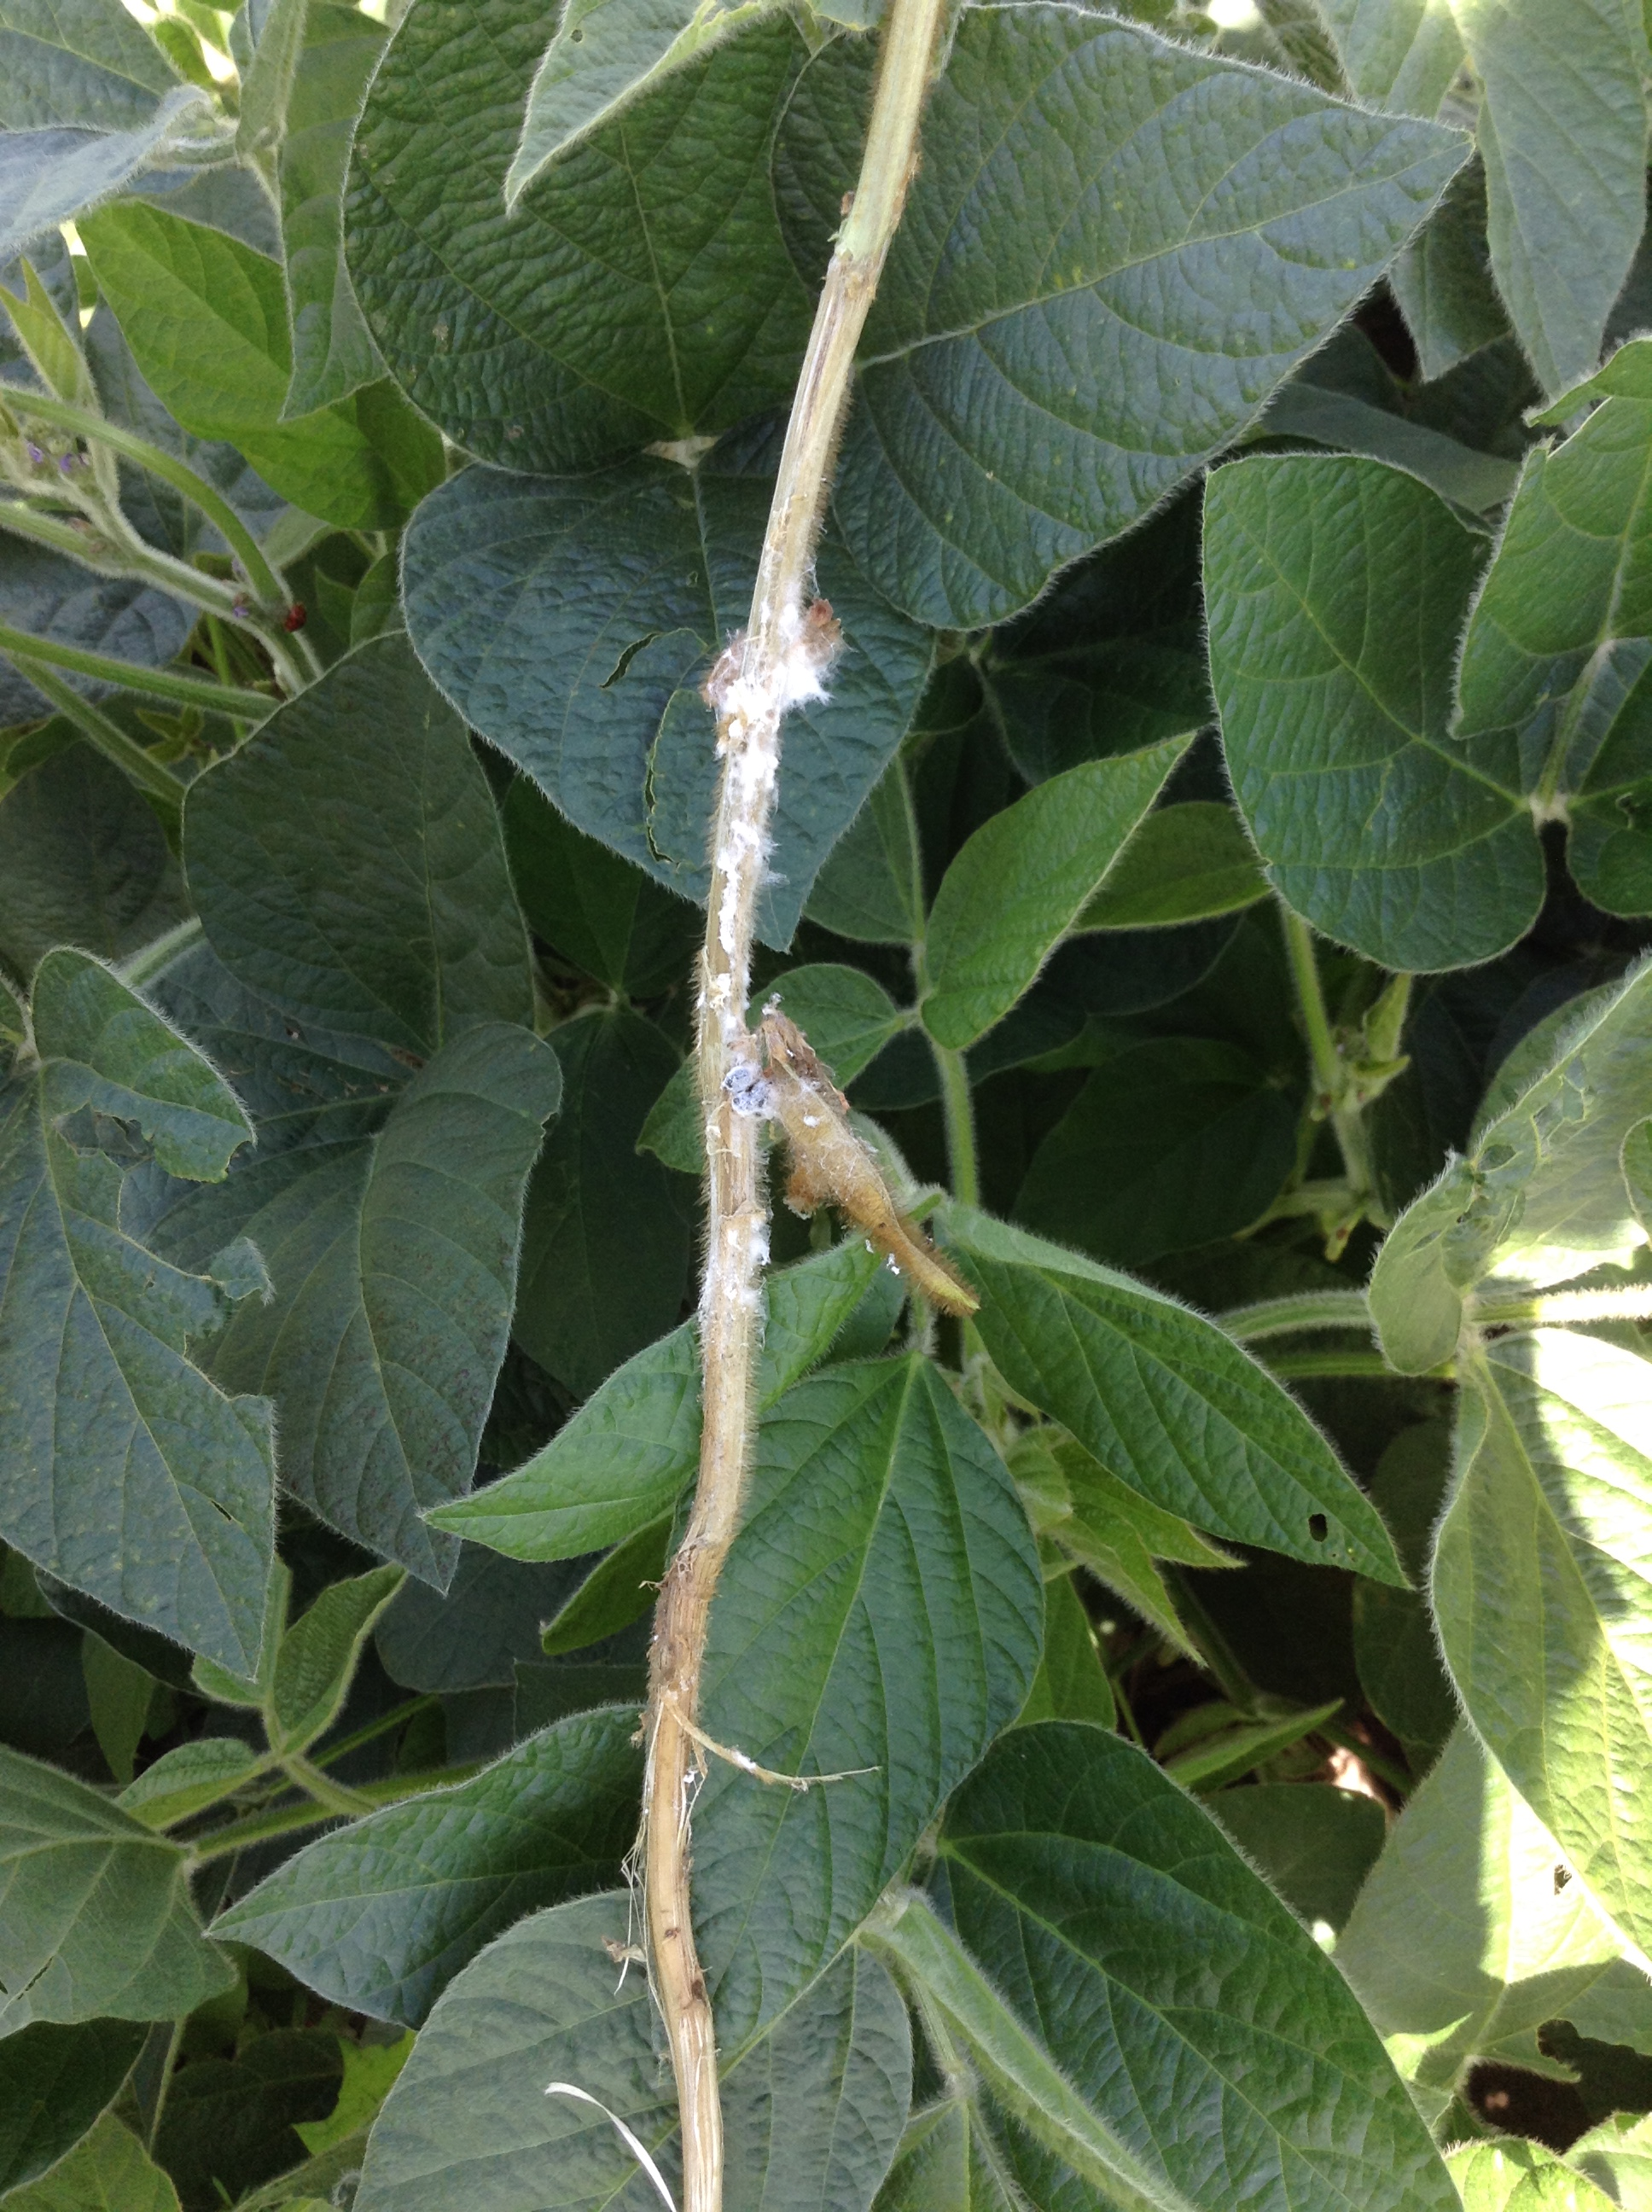 White mold on soybean stem.